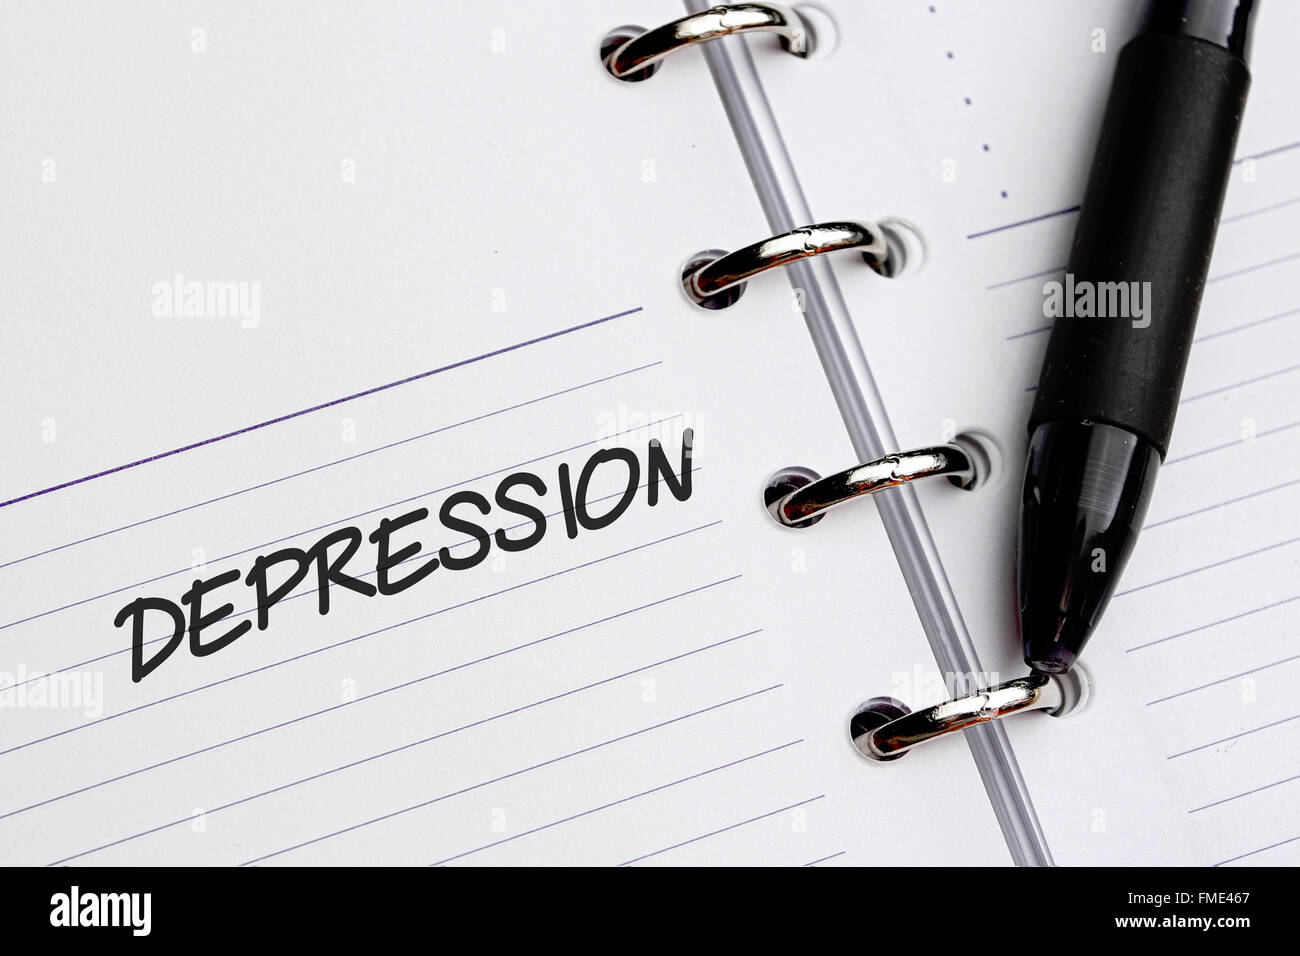 Depression word written on paper - Stock Image